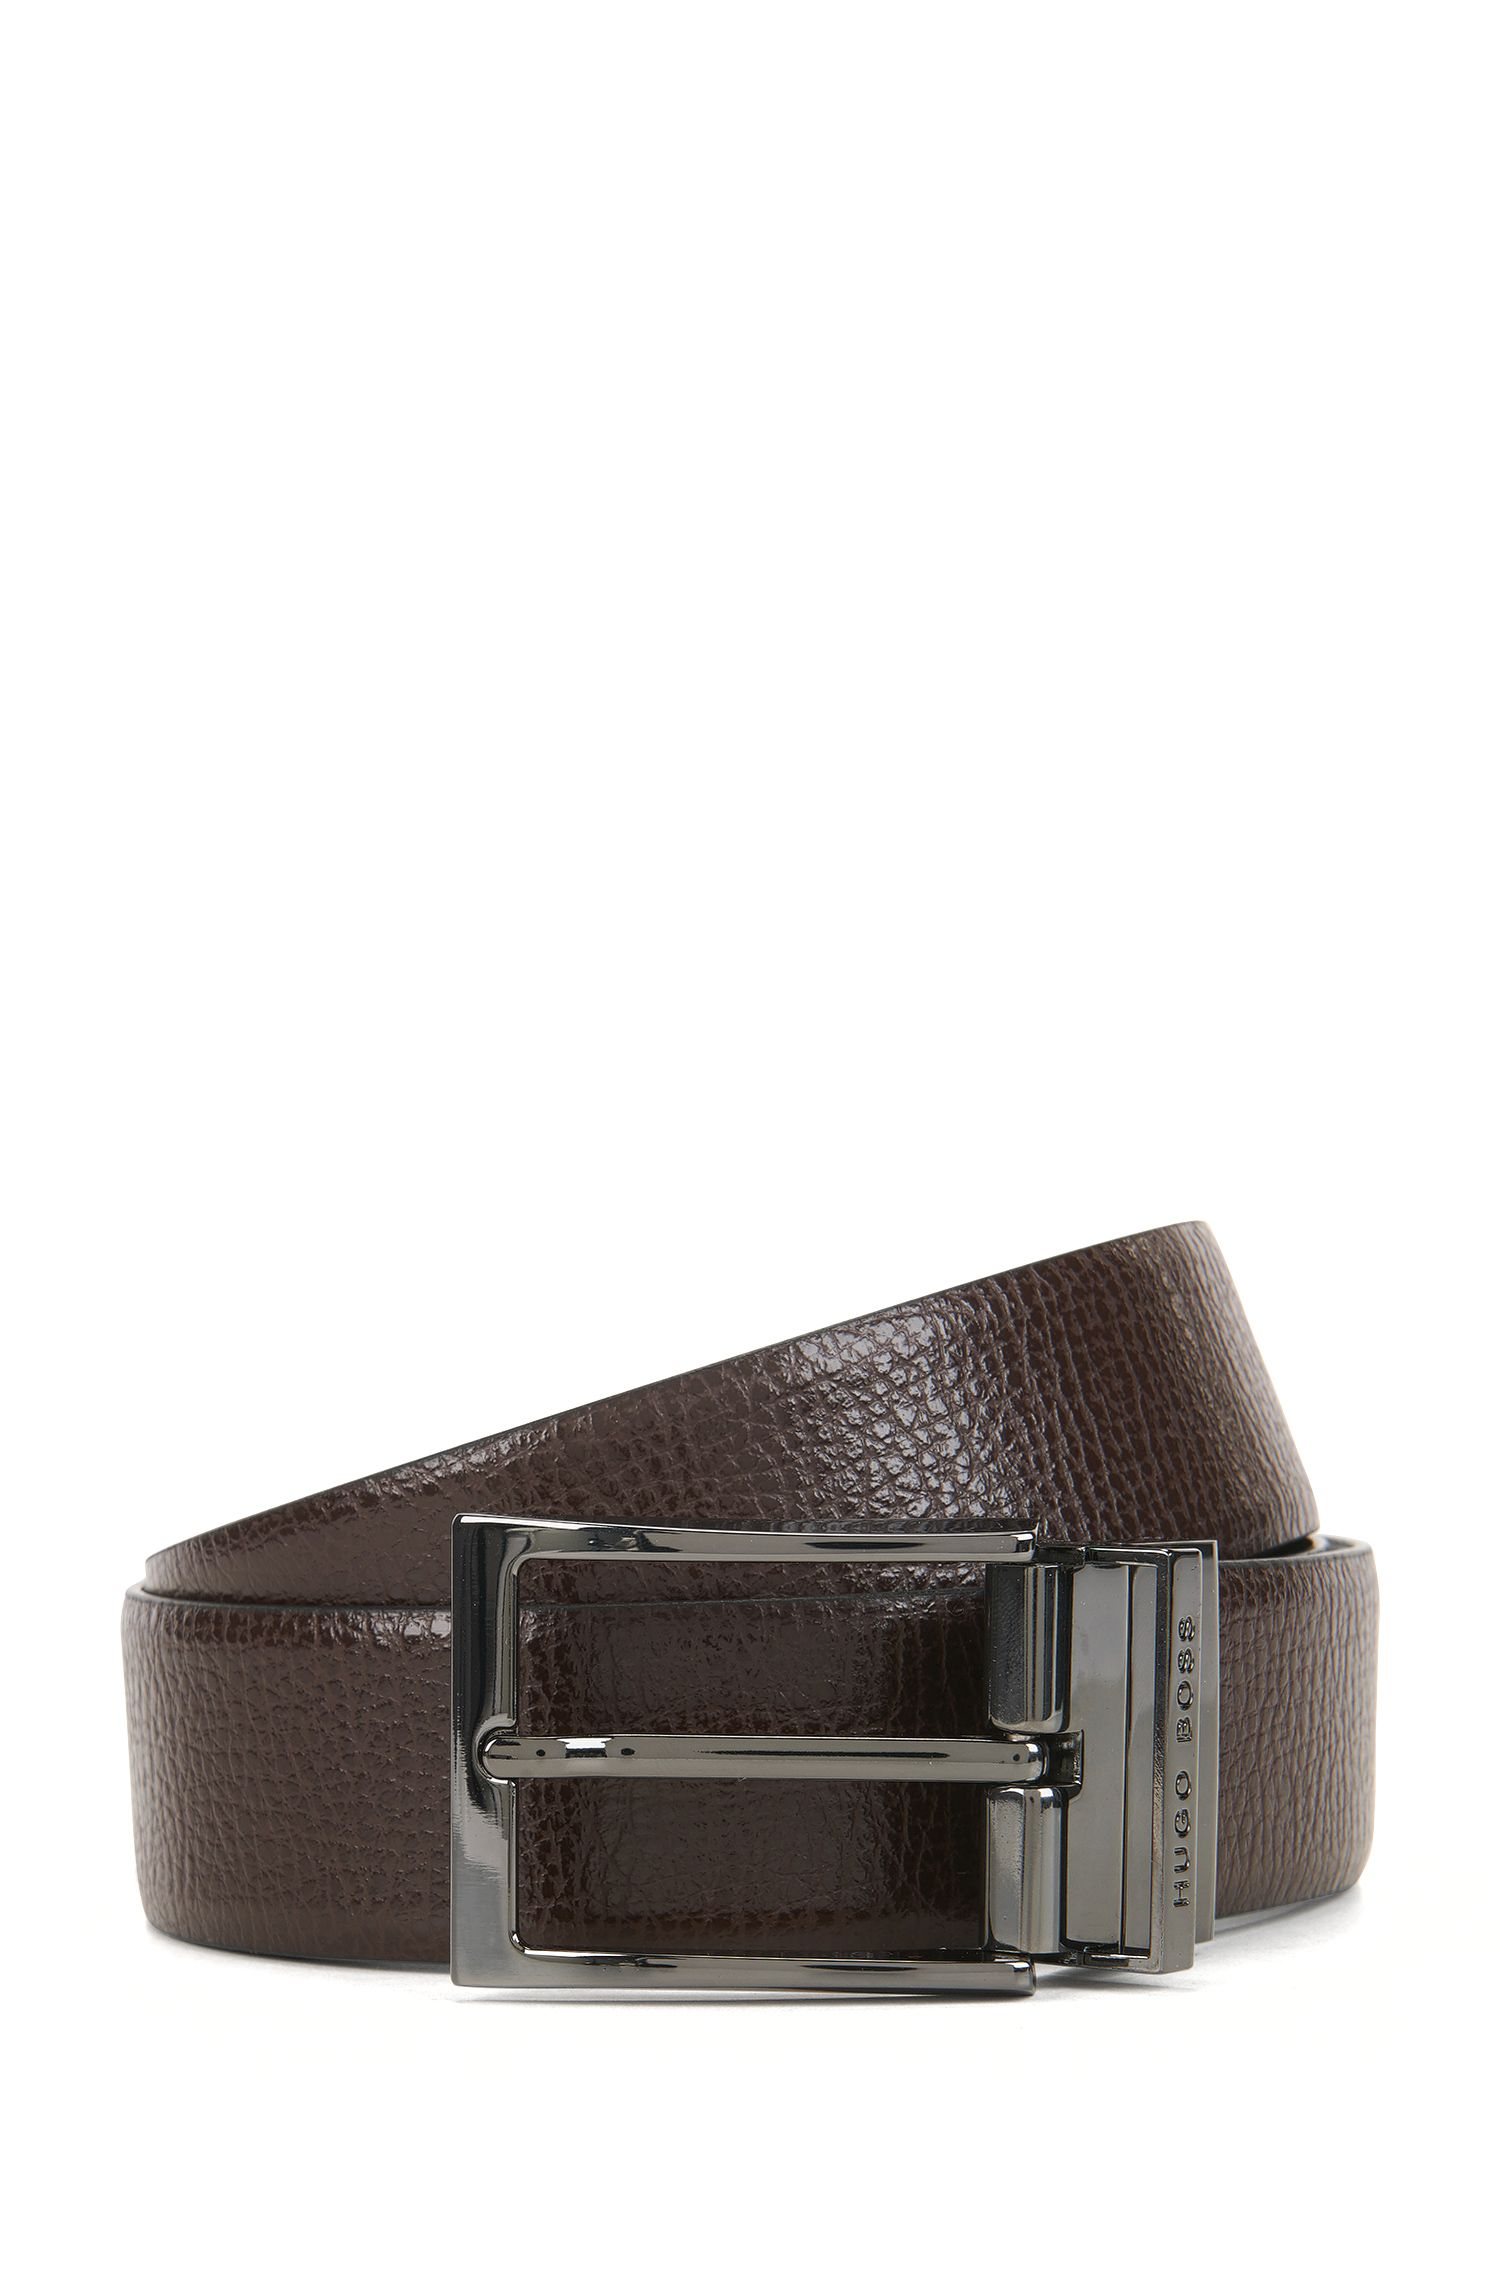 'Ollie Or35 Ps' | Reversible Italian Leather Belt